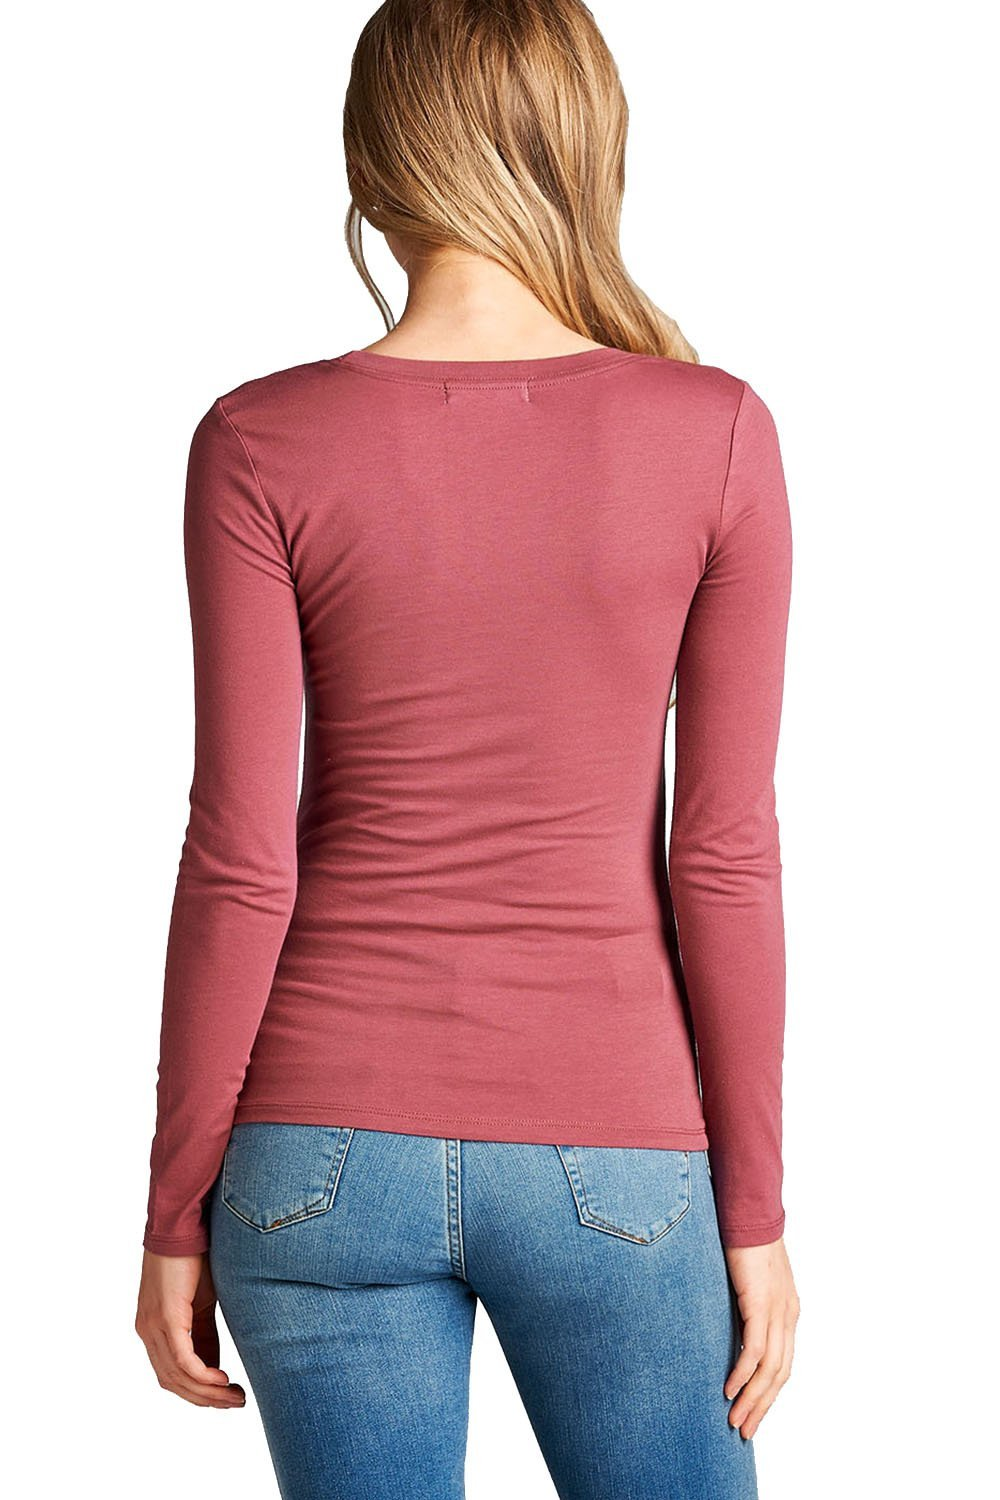 Plain Casual Scoop Neck Long Sleeve Tee T-Shirt